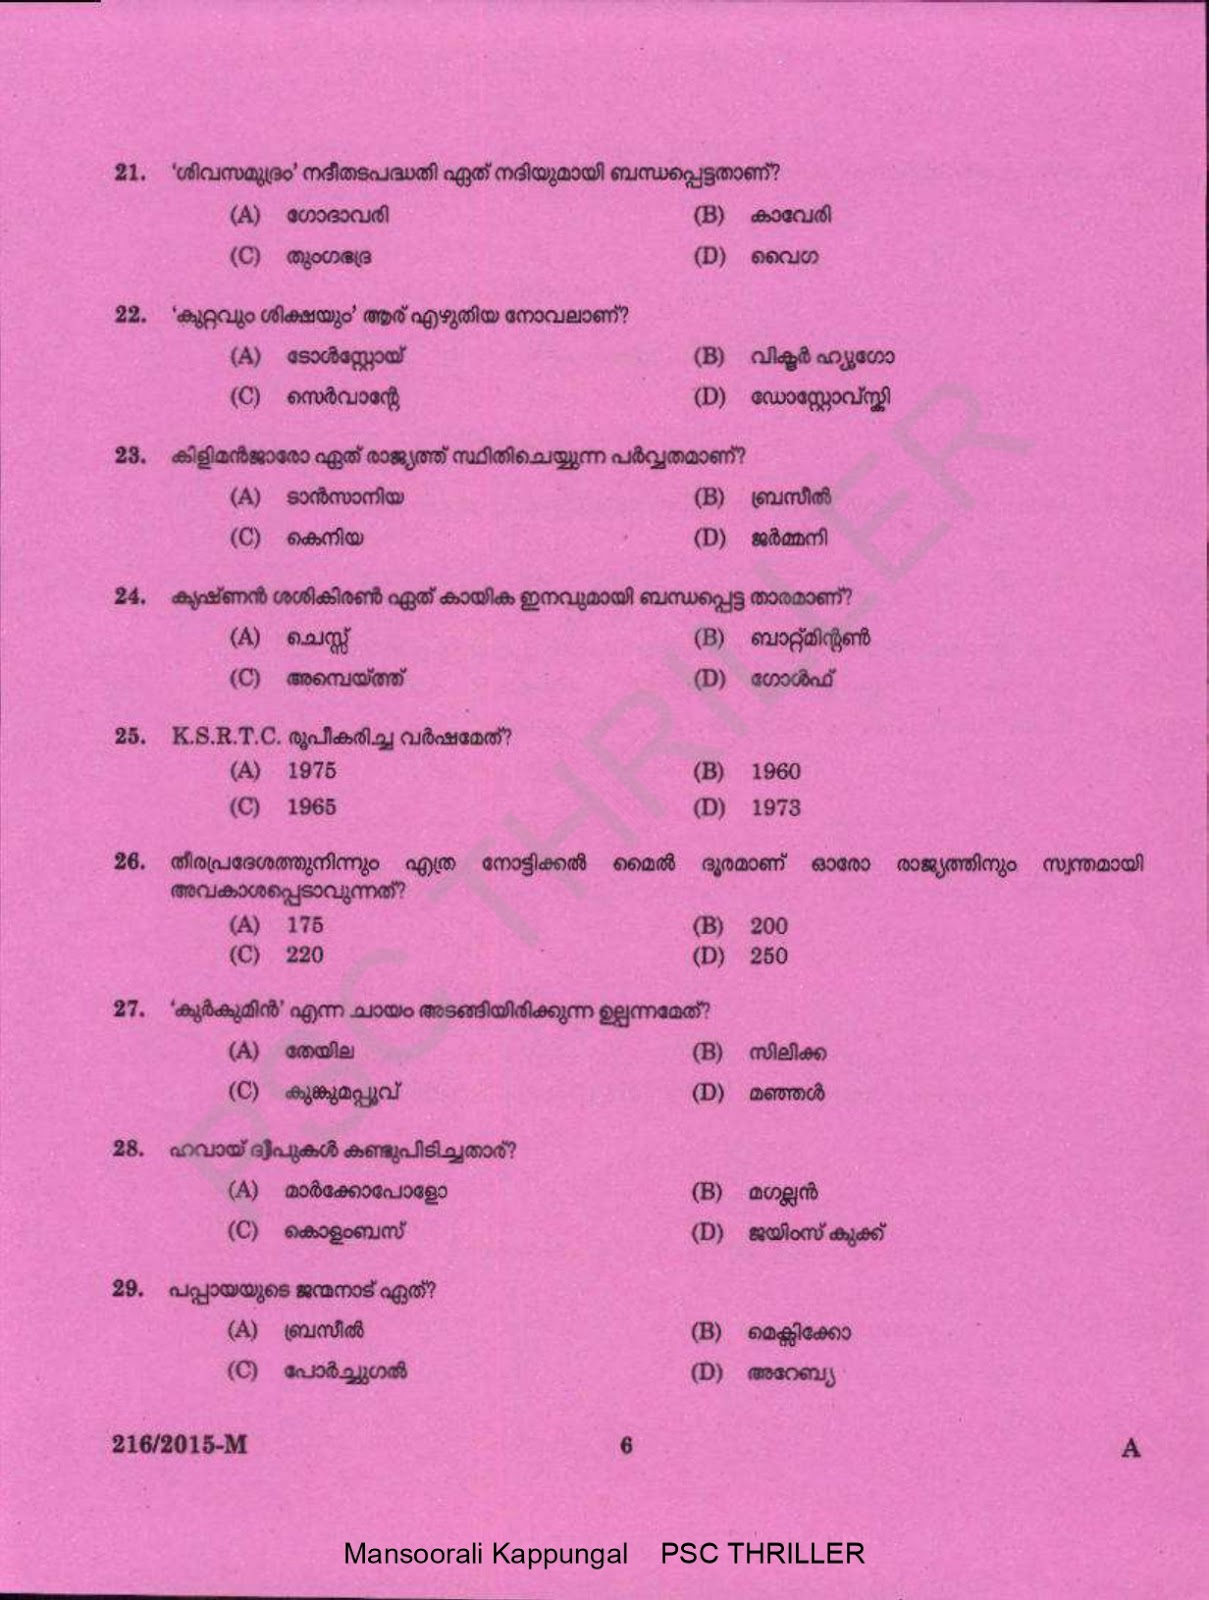 Village Extension Officer (VEO) -Question Paper - 216/2015 - Kerala PSC